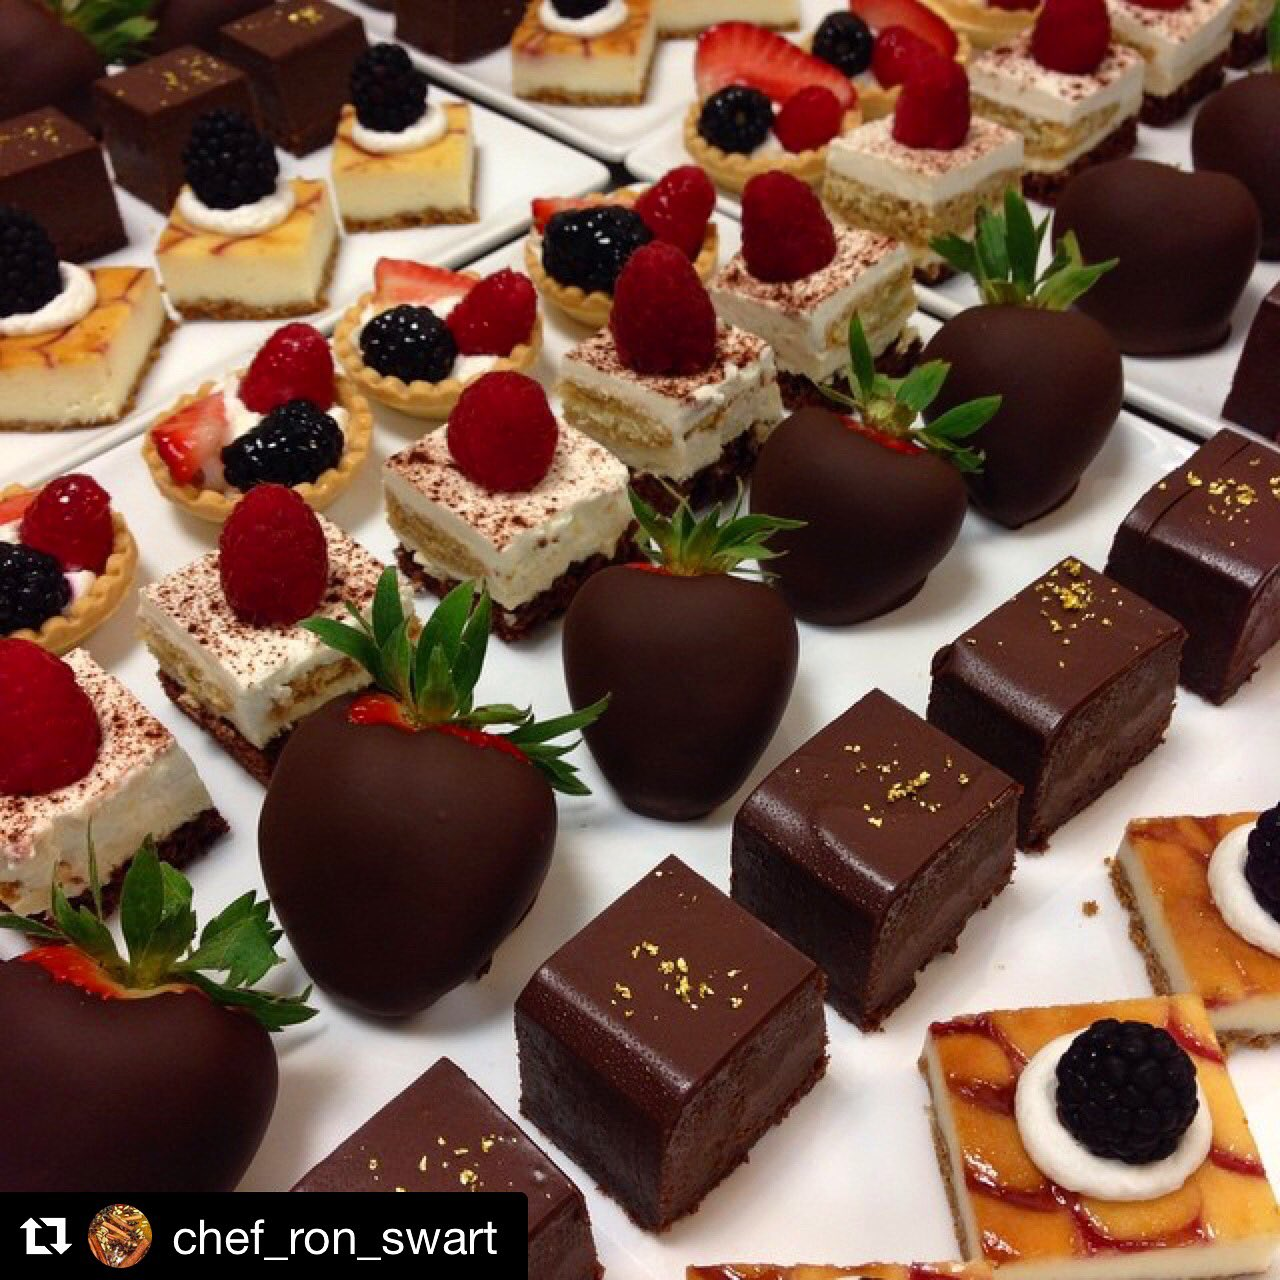 Delicious mini desserts by our Pastry Chef Ron! #TrumpNationalLA #Desserts https://t.co/tqXS6StF0b